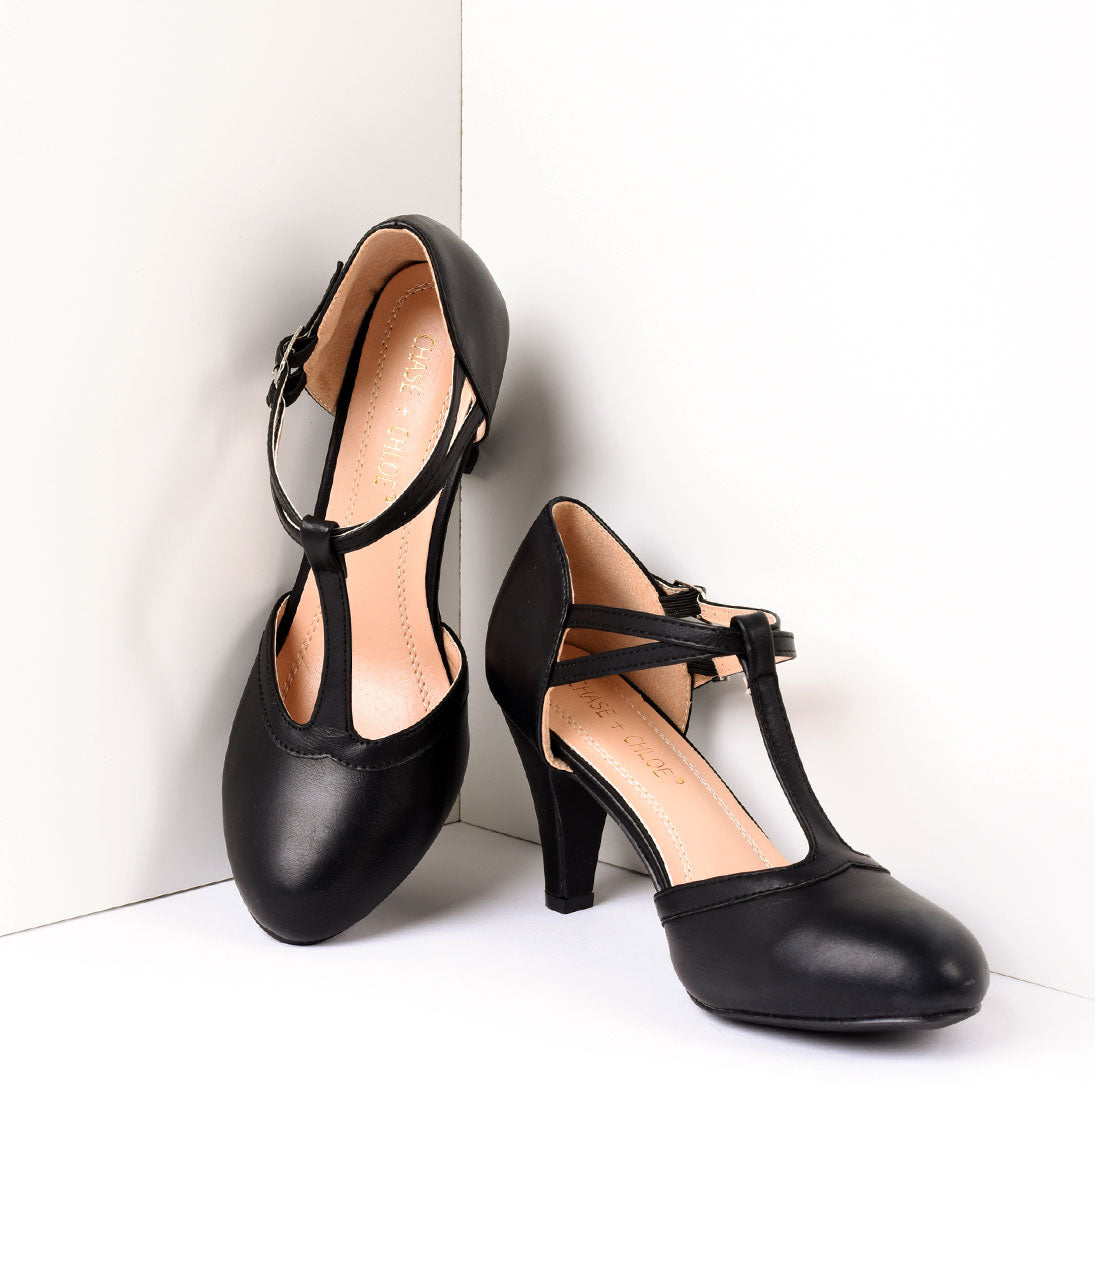 1920s Style Shoes Vintage Style Black Leatherette Round Toe T-Strap Heels $48.00 AT vintagedancer.com